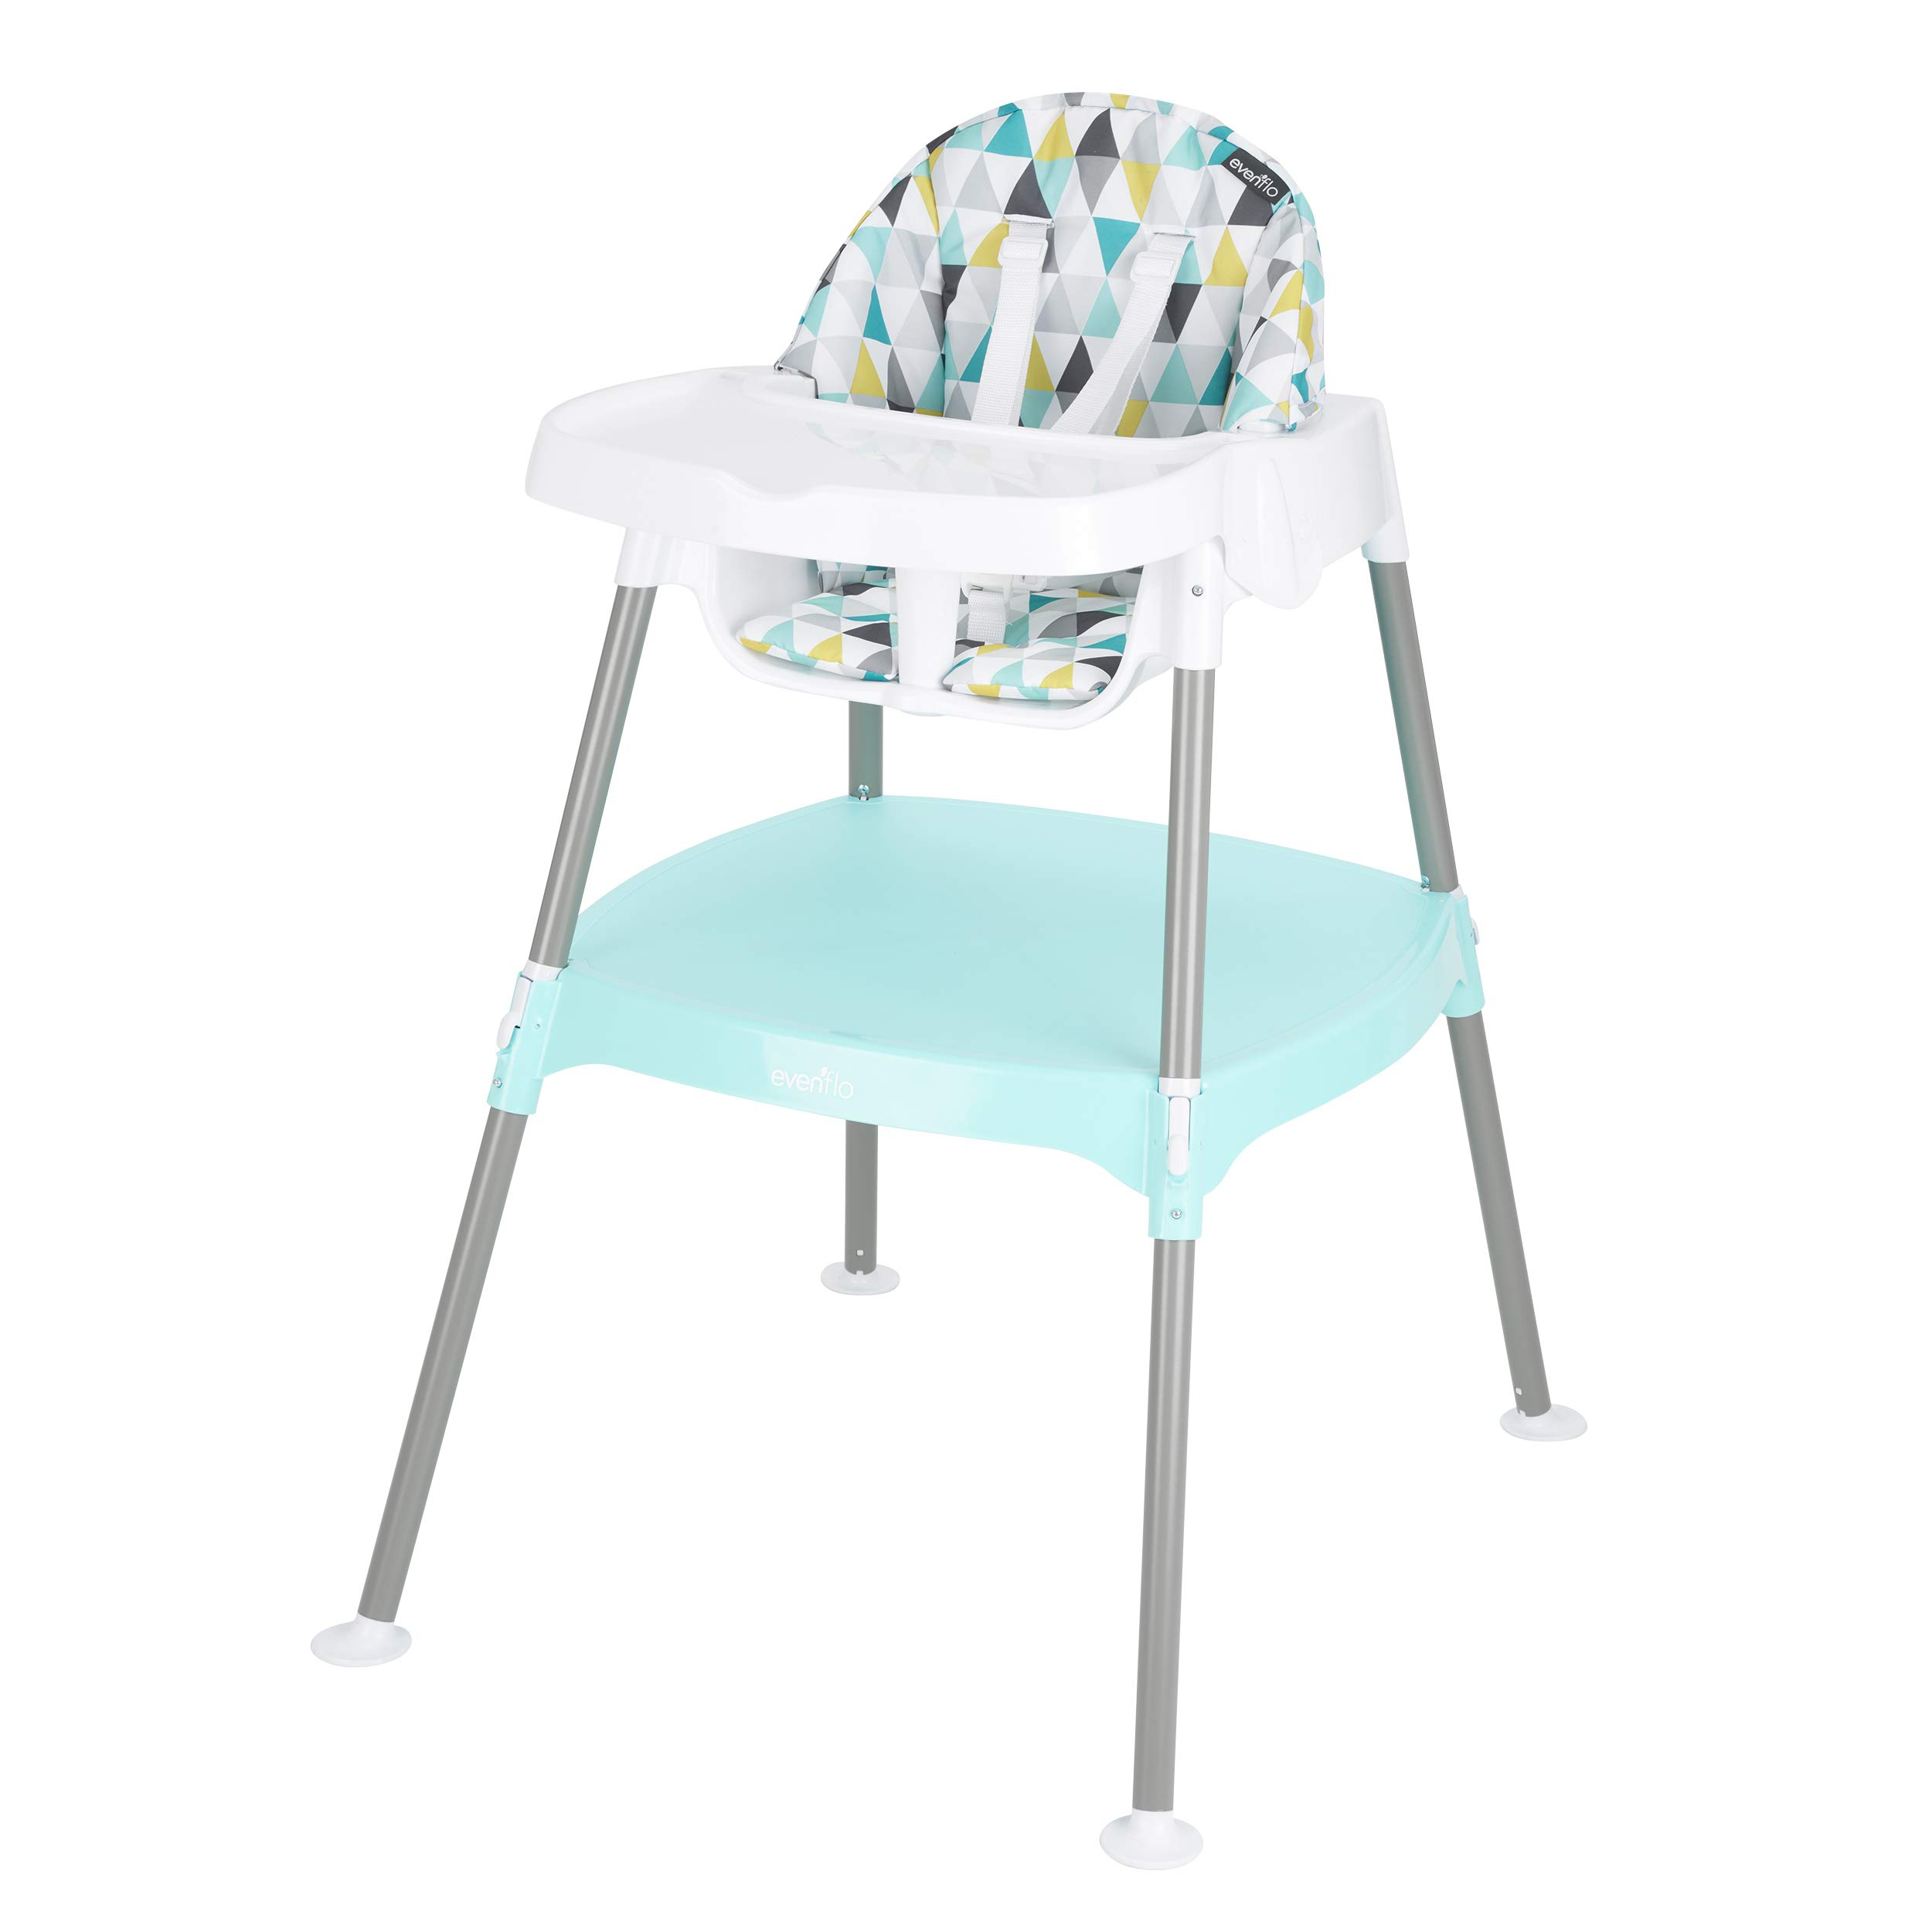 Evenflo 4-in-1 Eat & Grow Convertible High Chair (Prism) by Evenflo